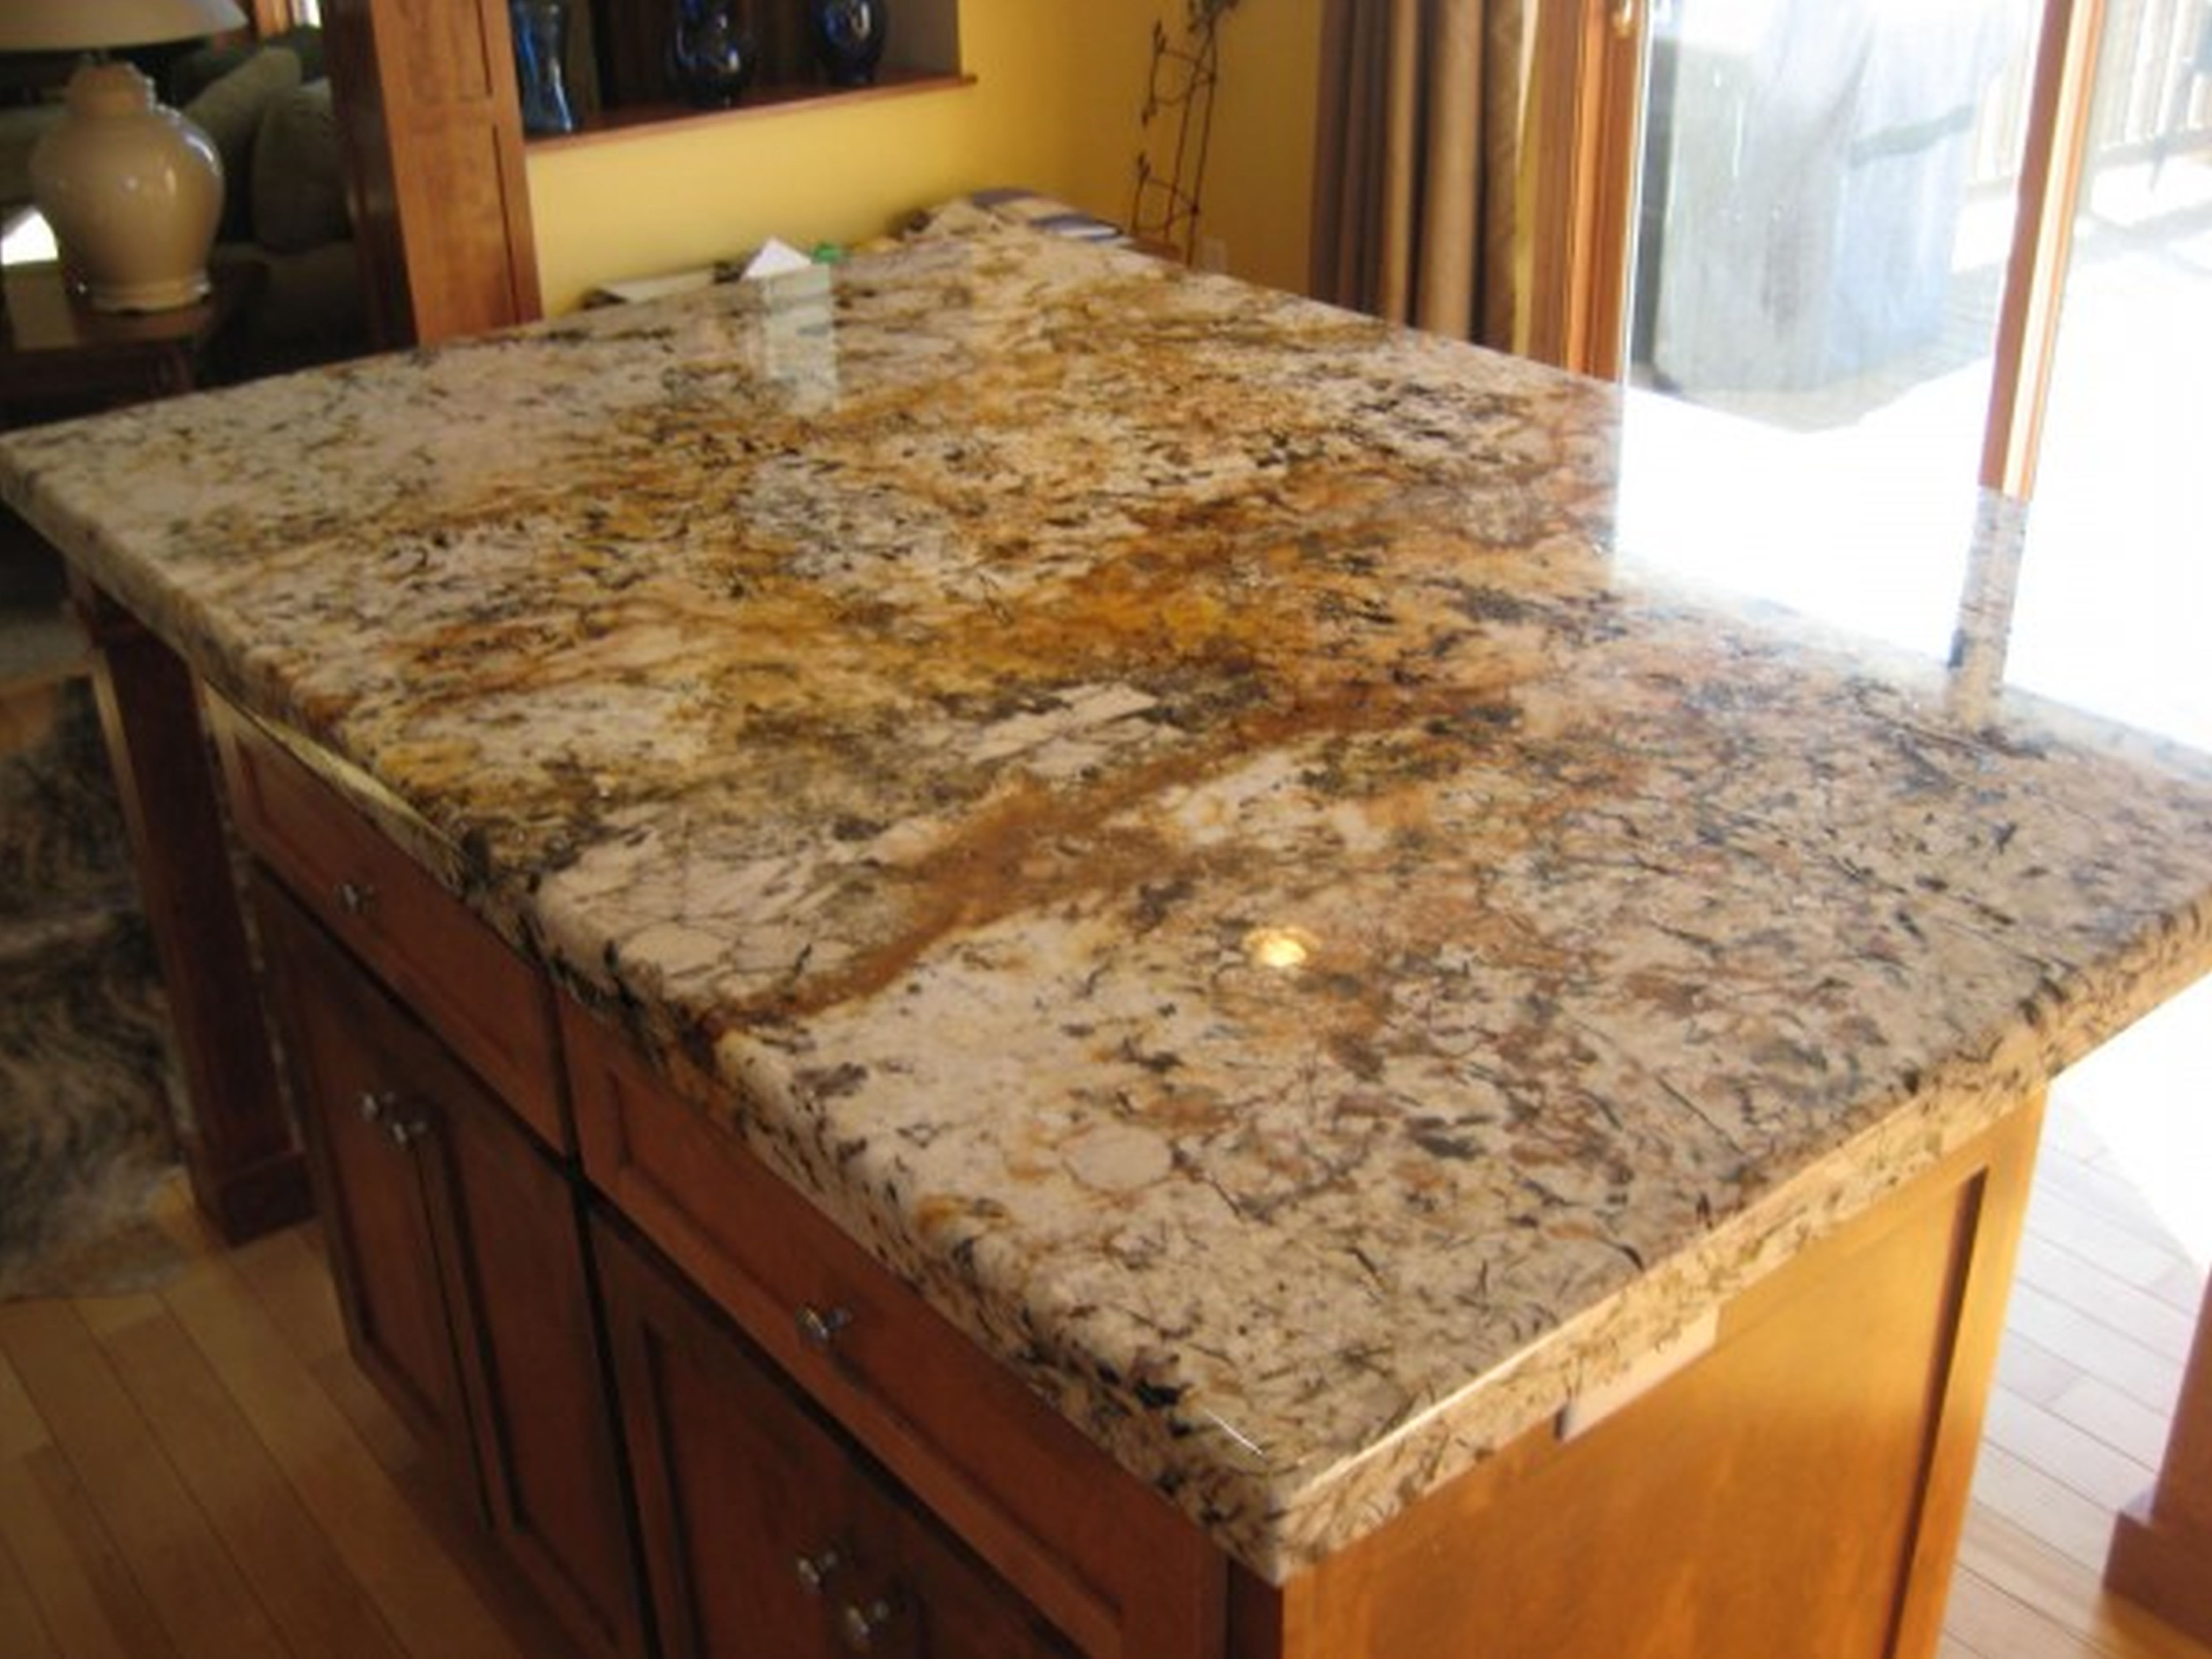 Kitchen Installed New Granite Stone Material For Countertops In